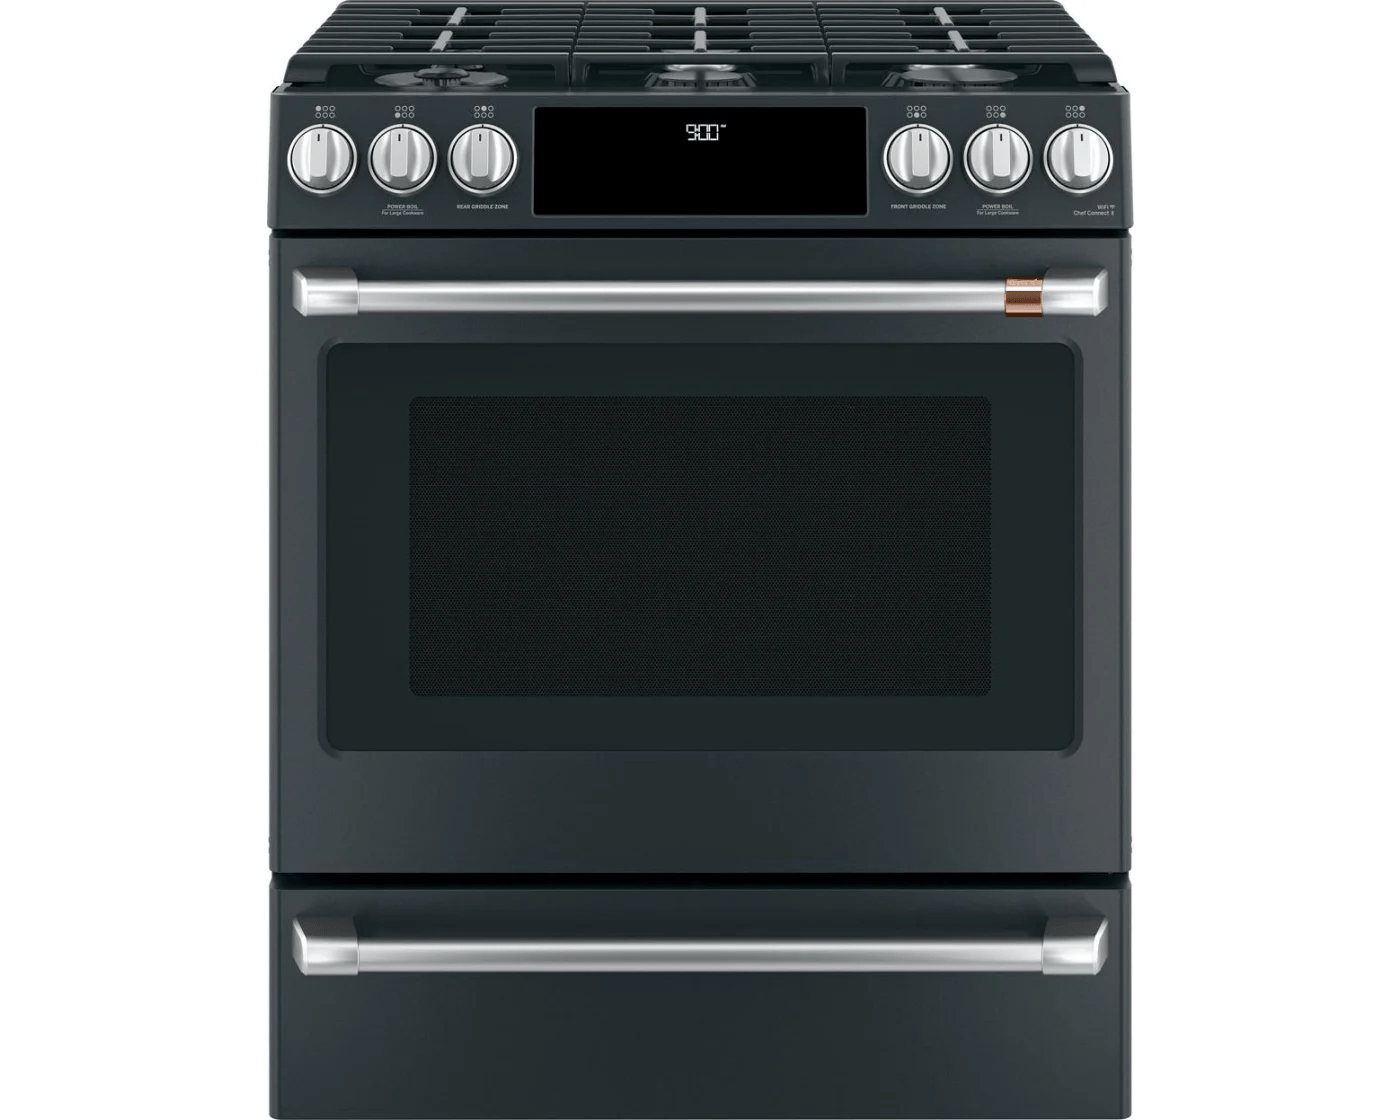 c2s900p3md1 by cafe dual fuel electric natural gas ranges goedekers com